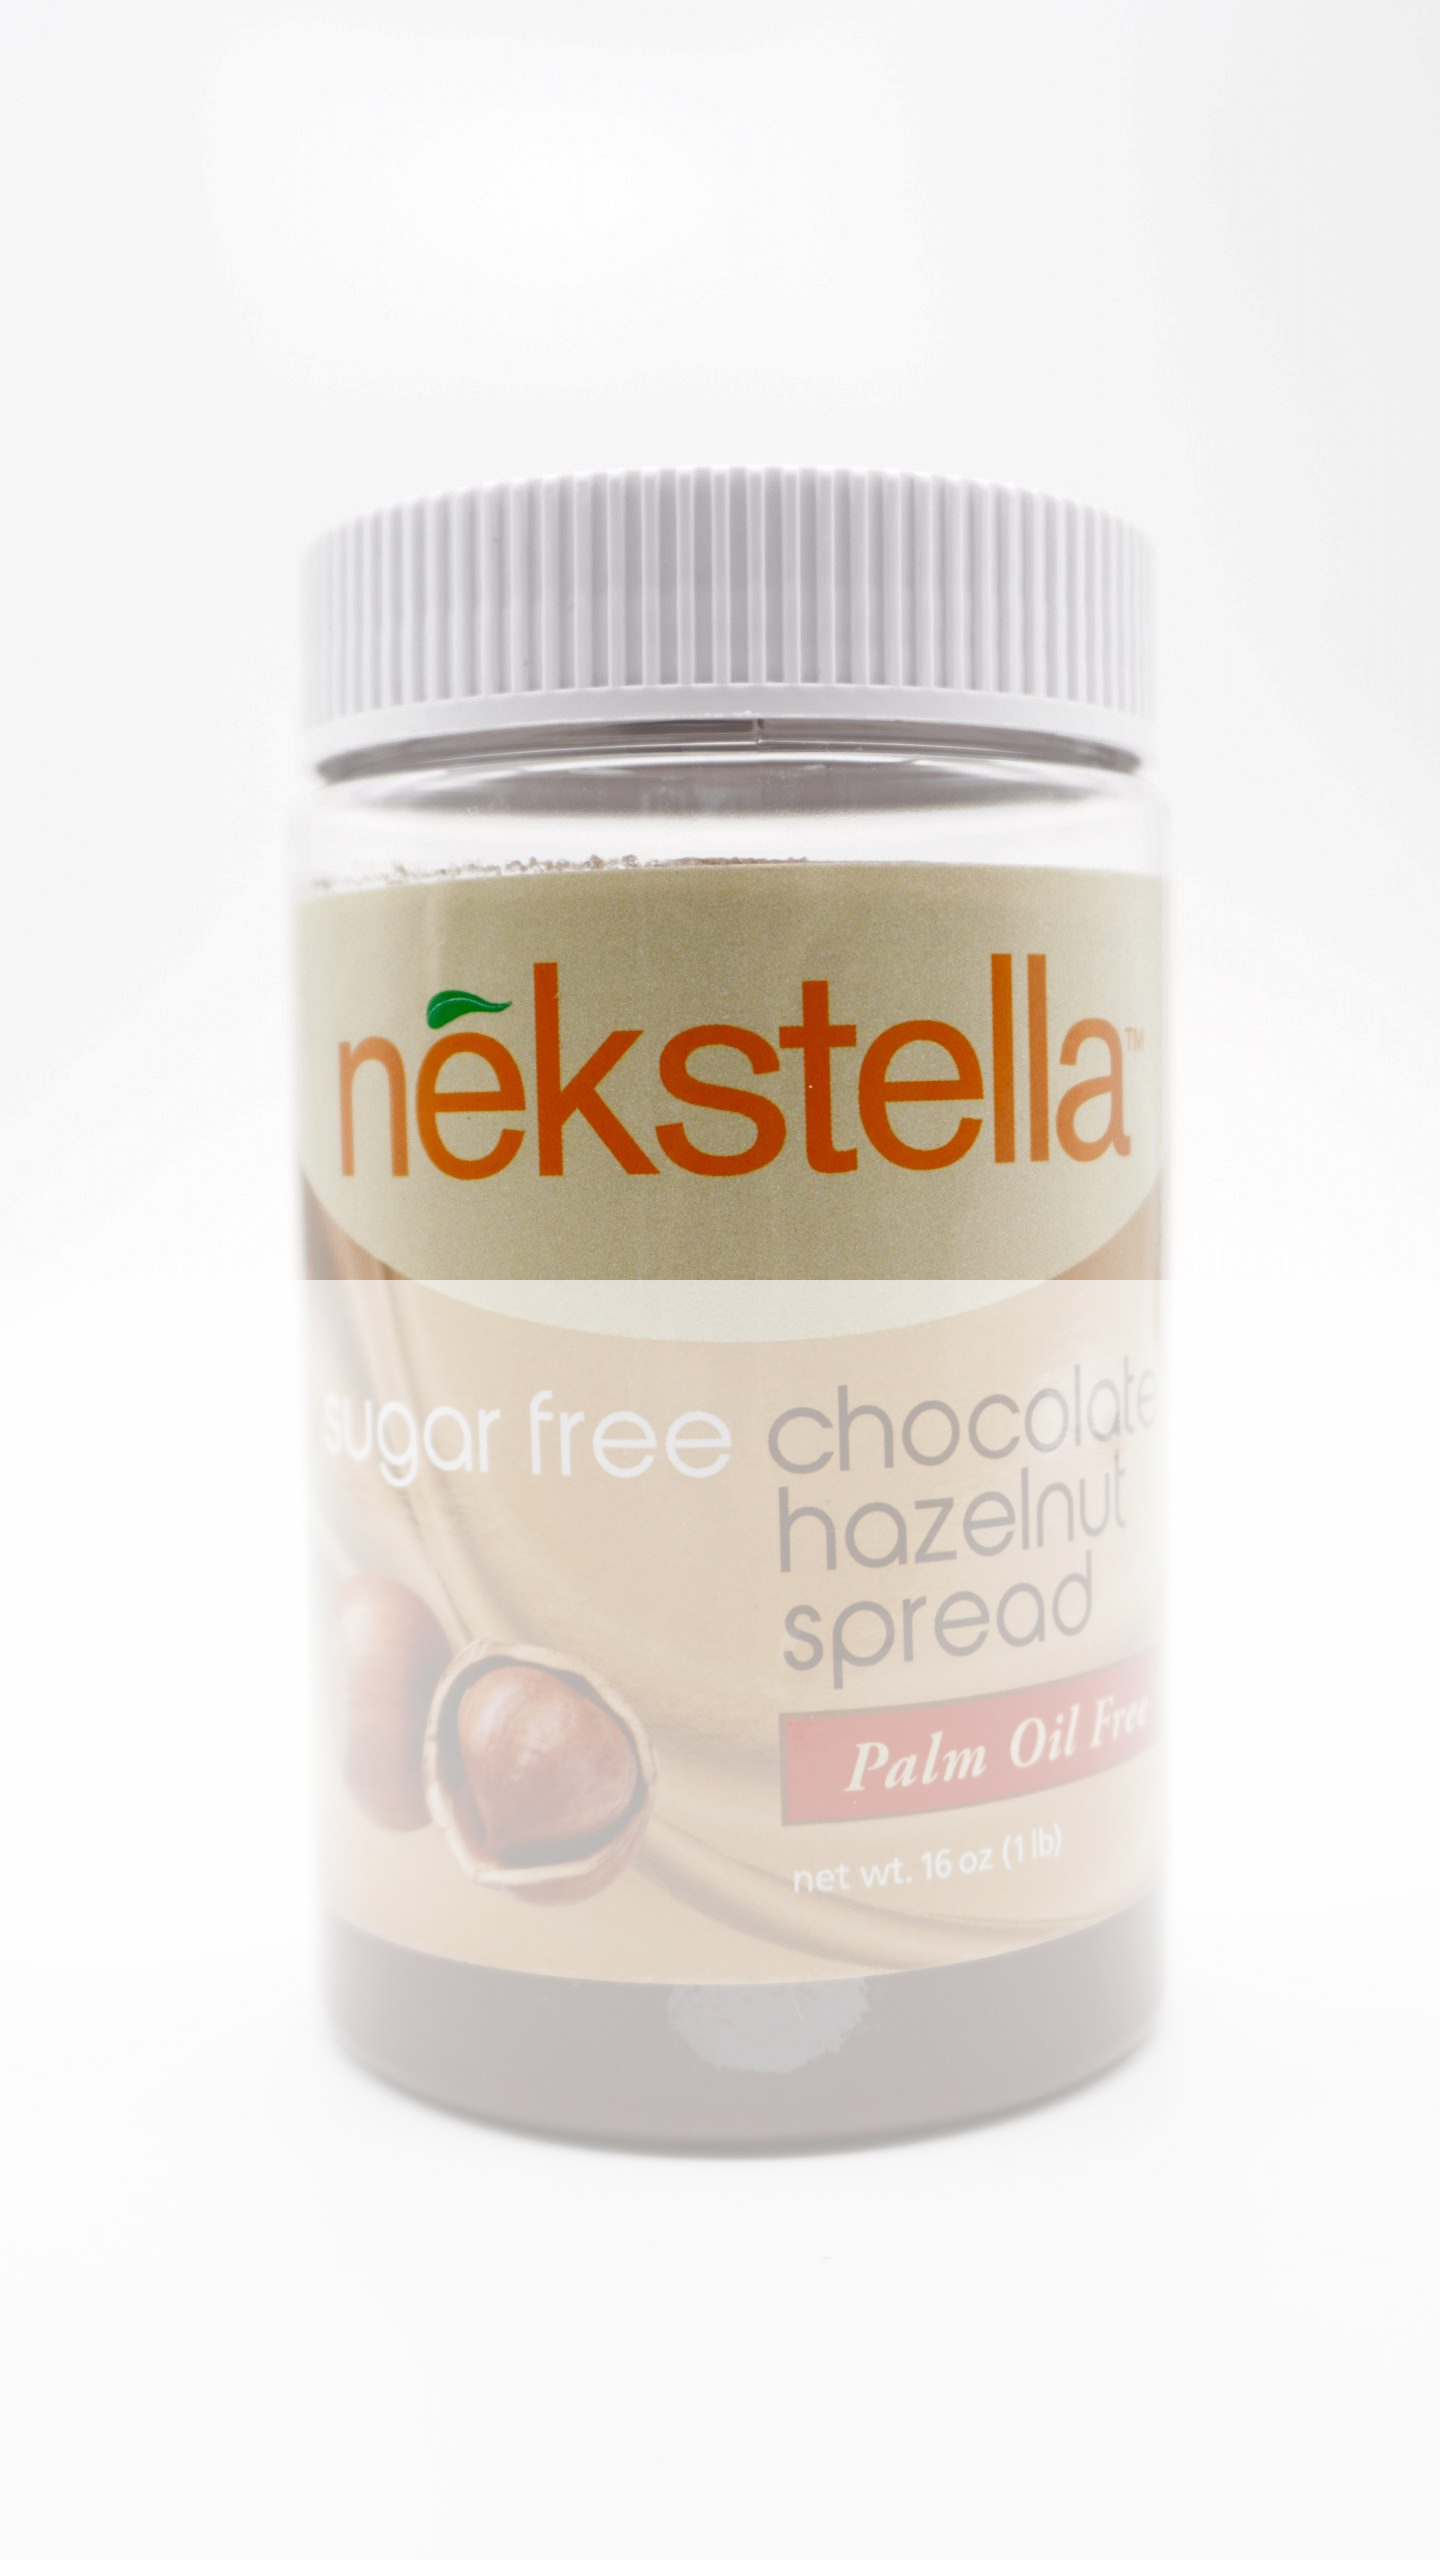 nekstella chocolate hazelnut spread